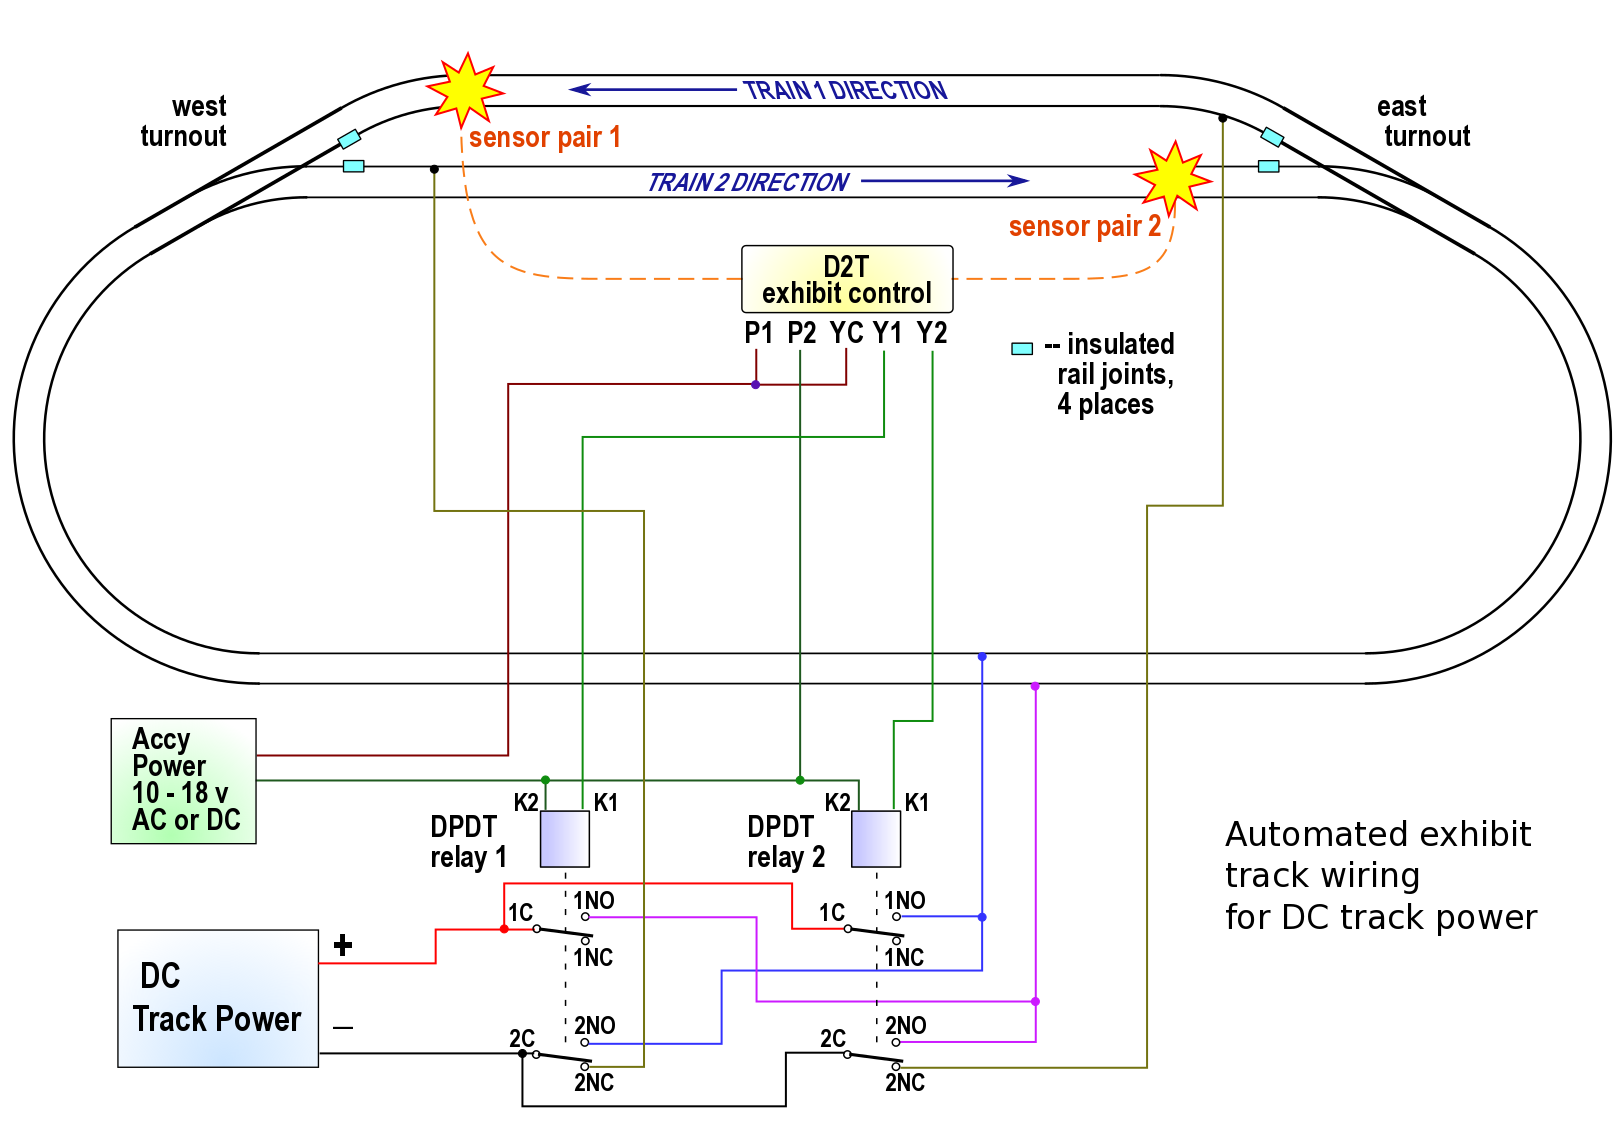 medium resolution of kato wiring diagrams wiring diagram go kato ho track wiring manual e book kato wiring diagrams